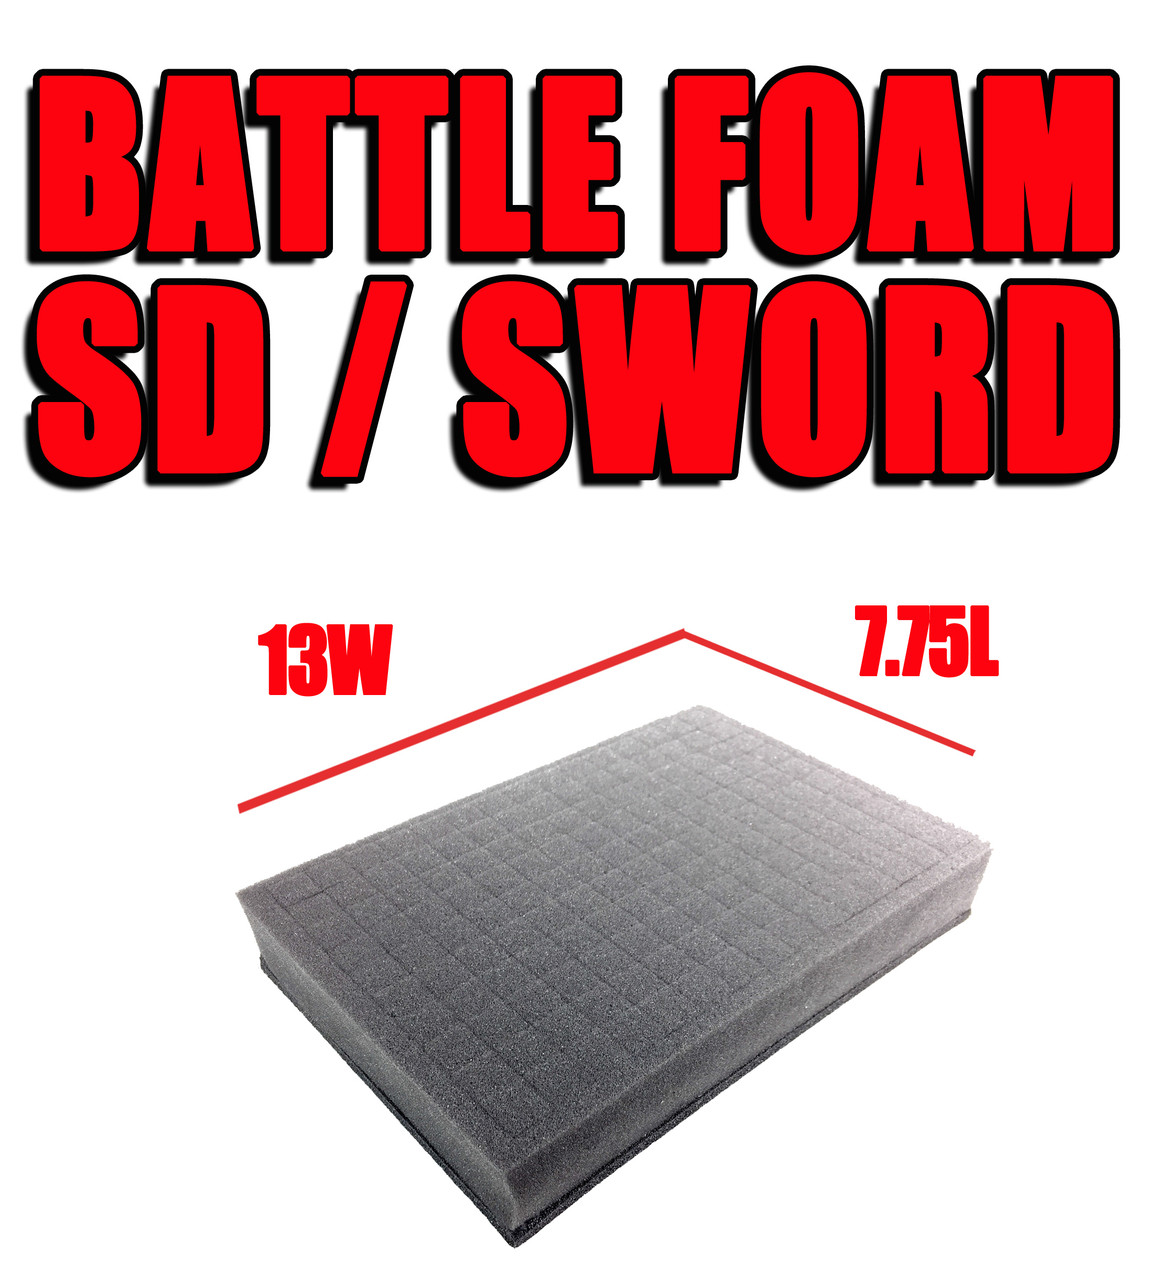 SD/Sword Foam Trays (13W x 7.75L)